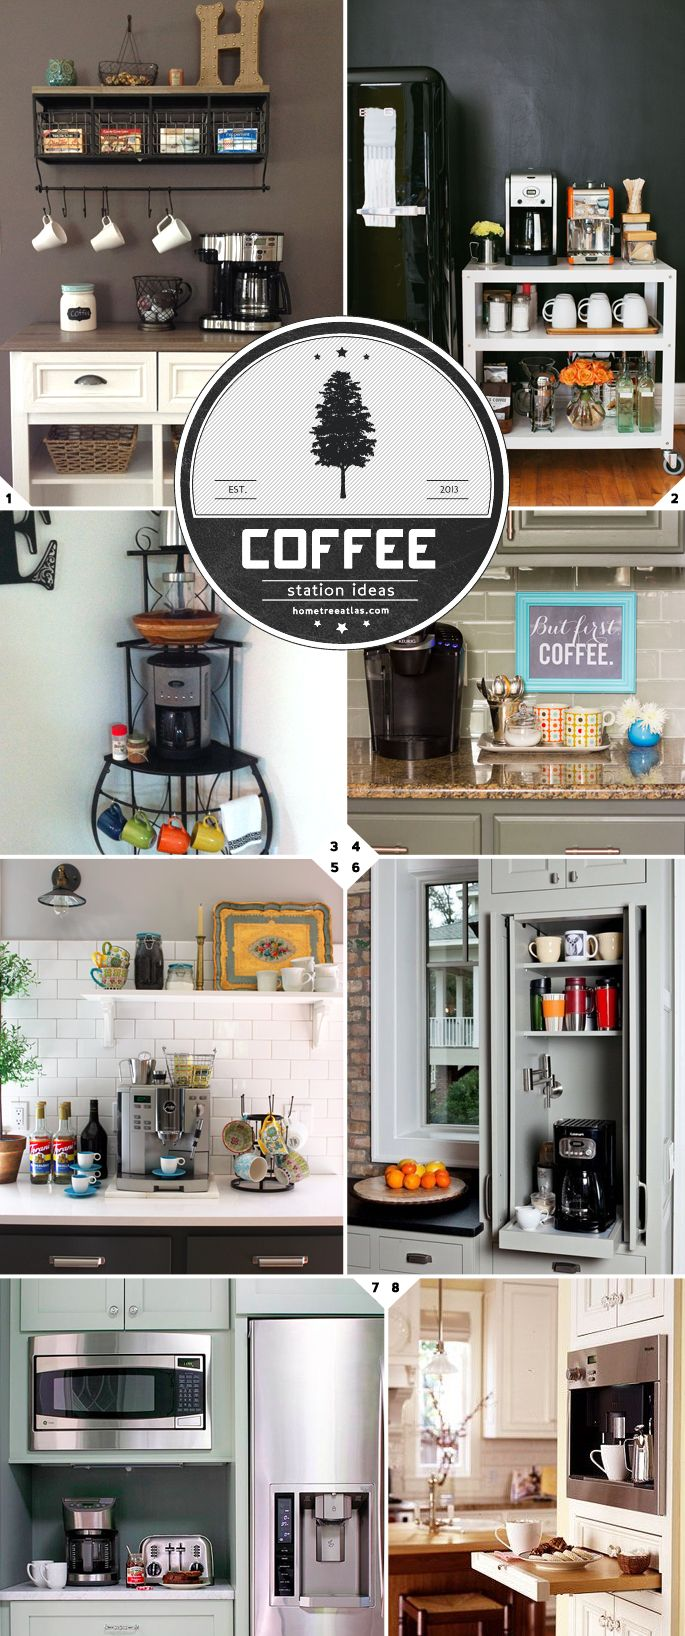 Home Barista: Kitchen Coffee Station Ideas and Designs